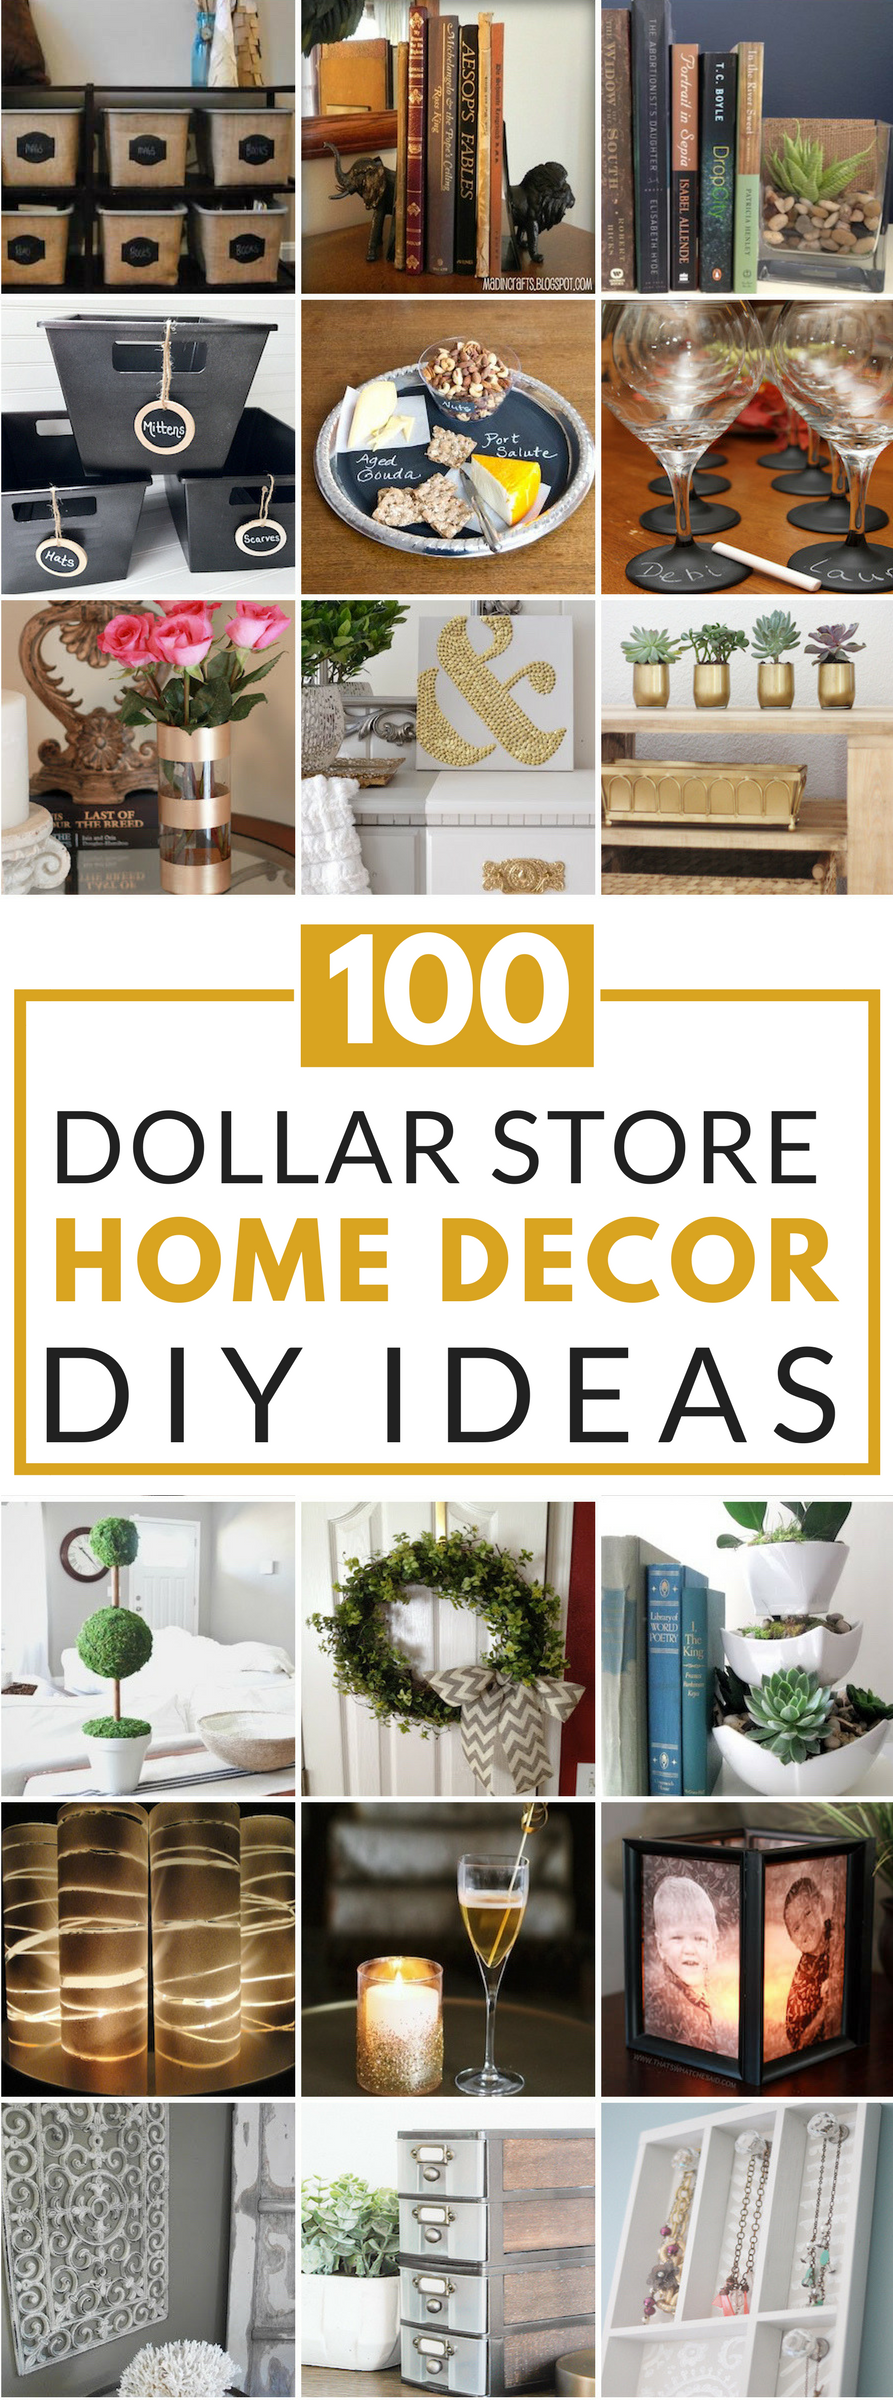 100 dollar store diy home decor ideas prudent penny pincher for House decorating themes